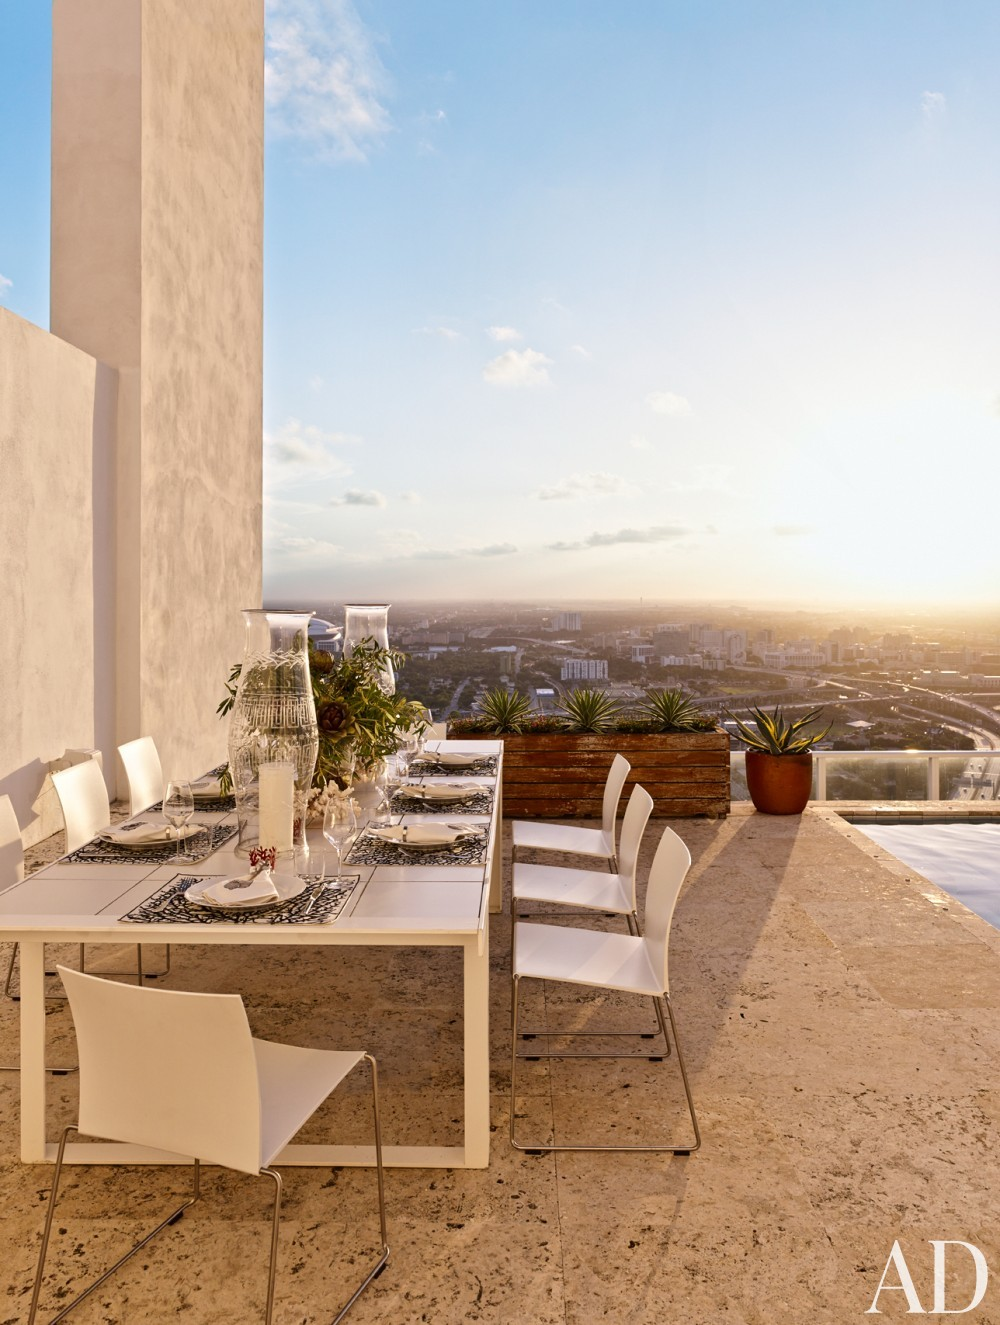 Outdoor Space and Chad Oppenheim in Miami, FL